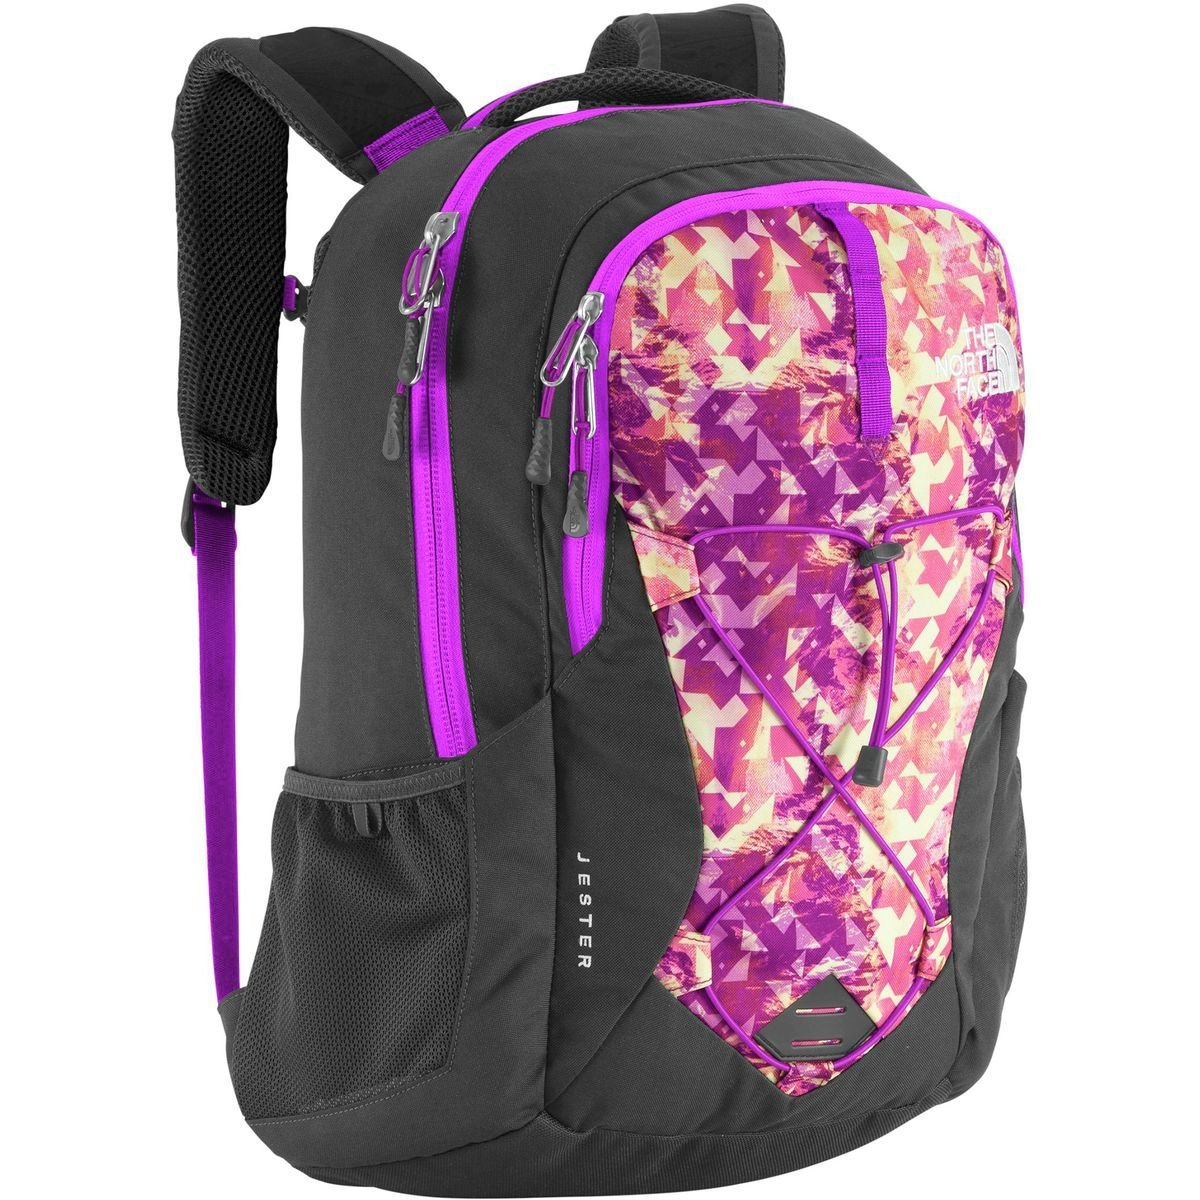 The North Face Women's Jester Backpack School Backpack for Girls